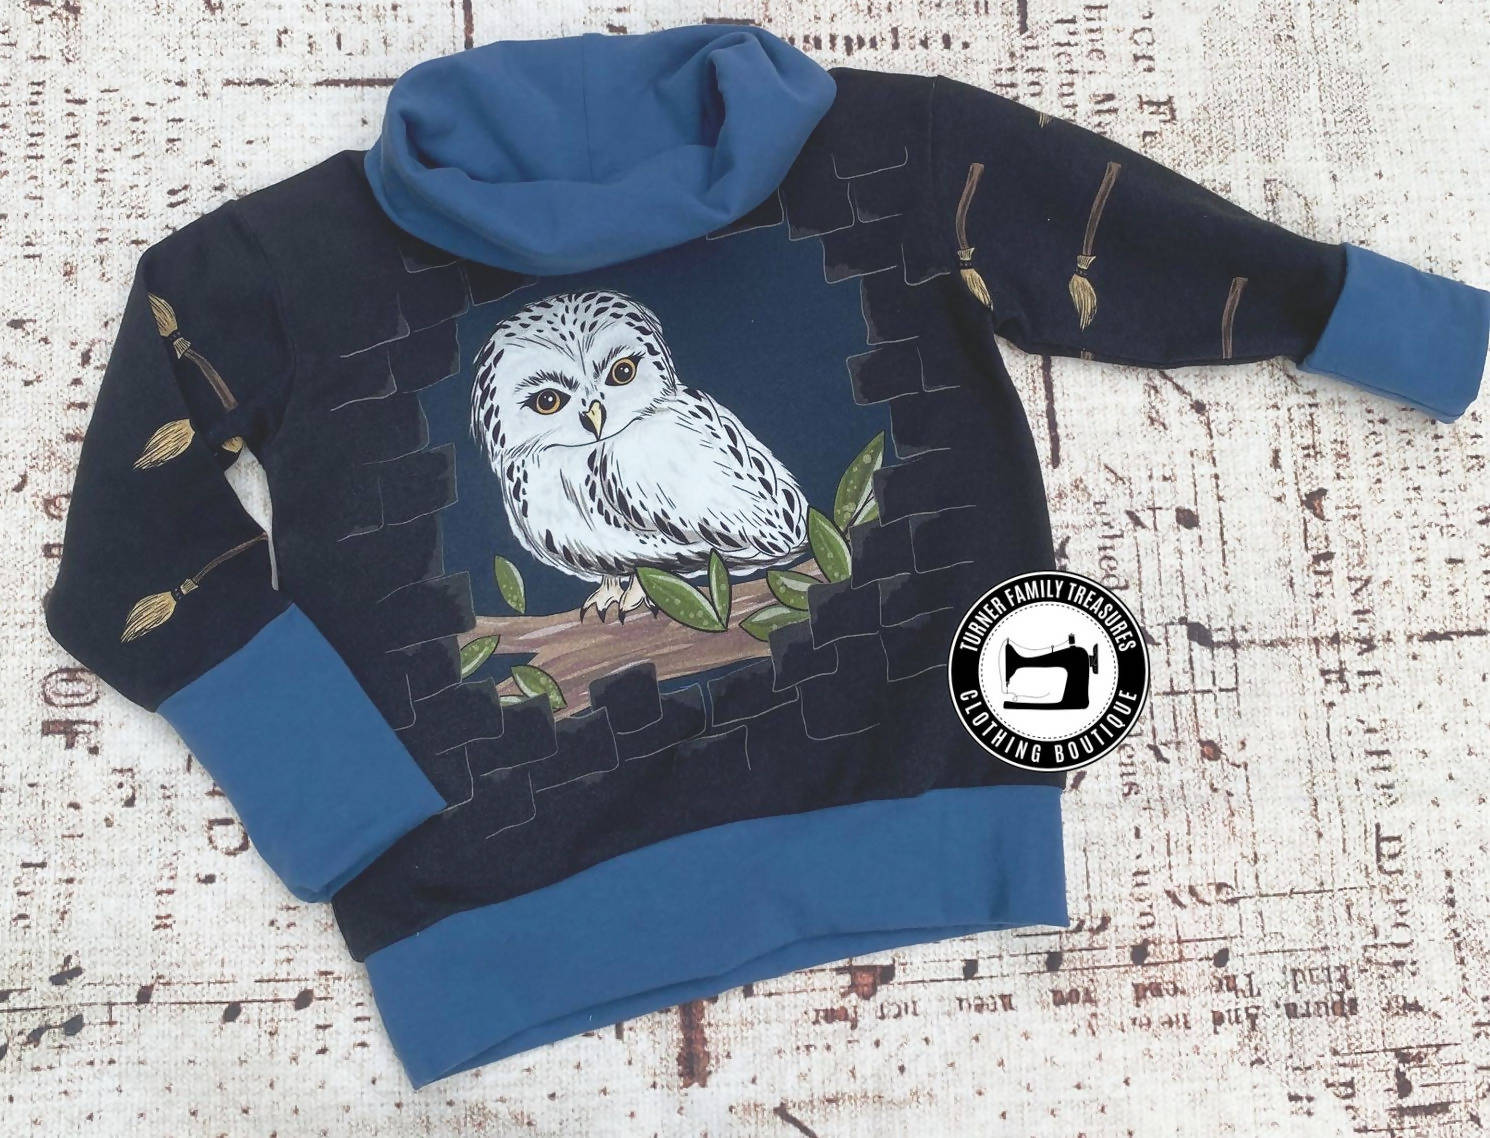 Grow With Me Oversized Owl Sweatshirt ages 1-3 years